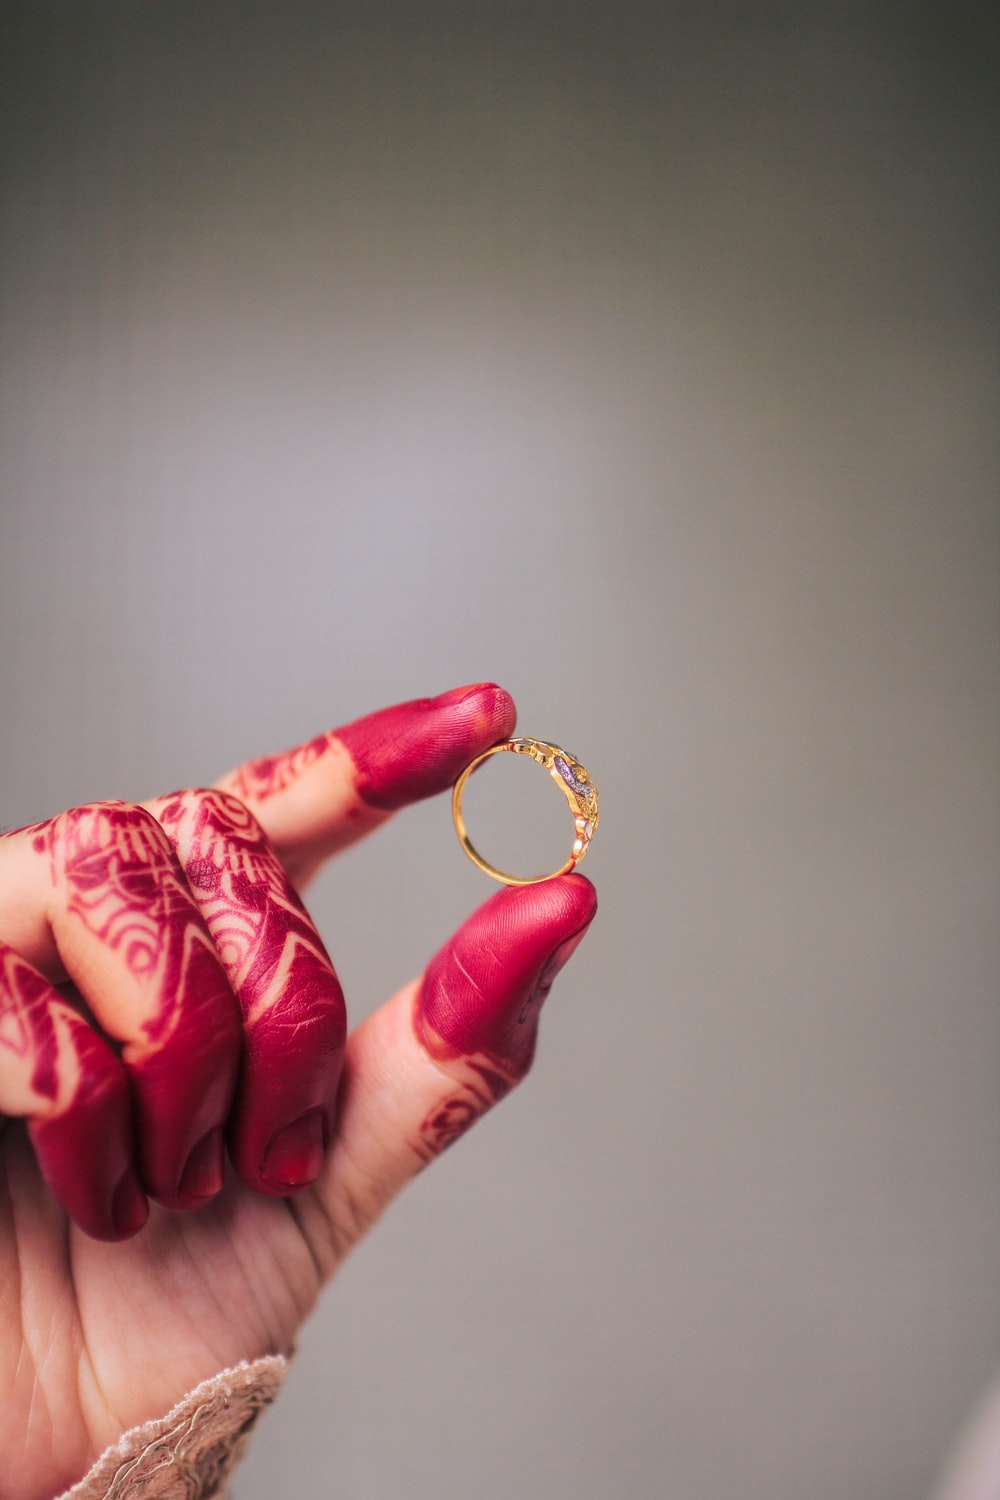 person holding gold-colored ring